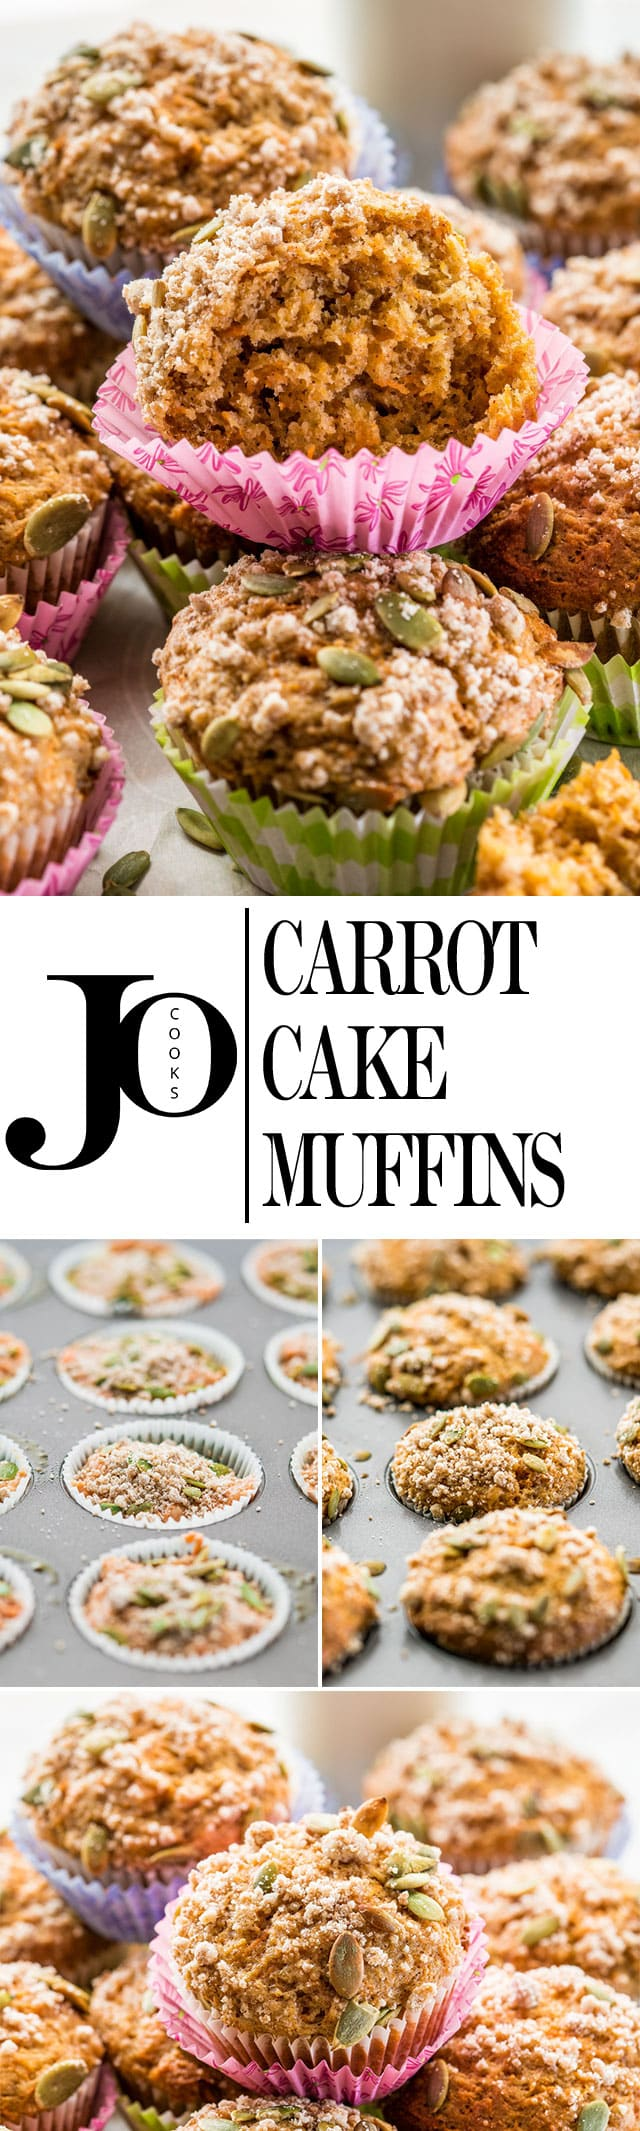 These incredible healthy Carrot Cake Muffins come complete with a delicious streusel topping and pepitas for an extra crunch. www.jocooks.com #carrotcake